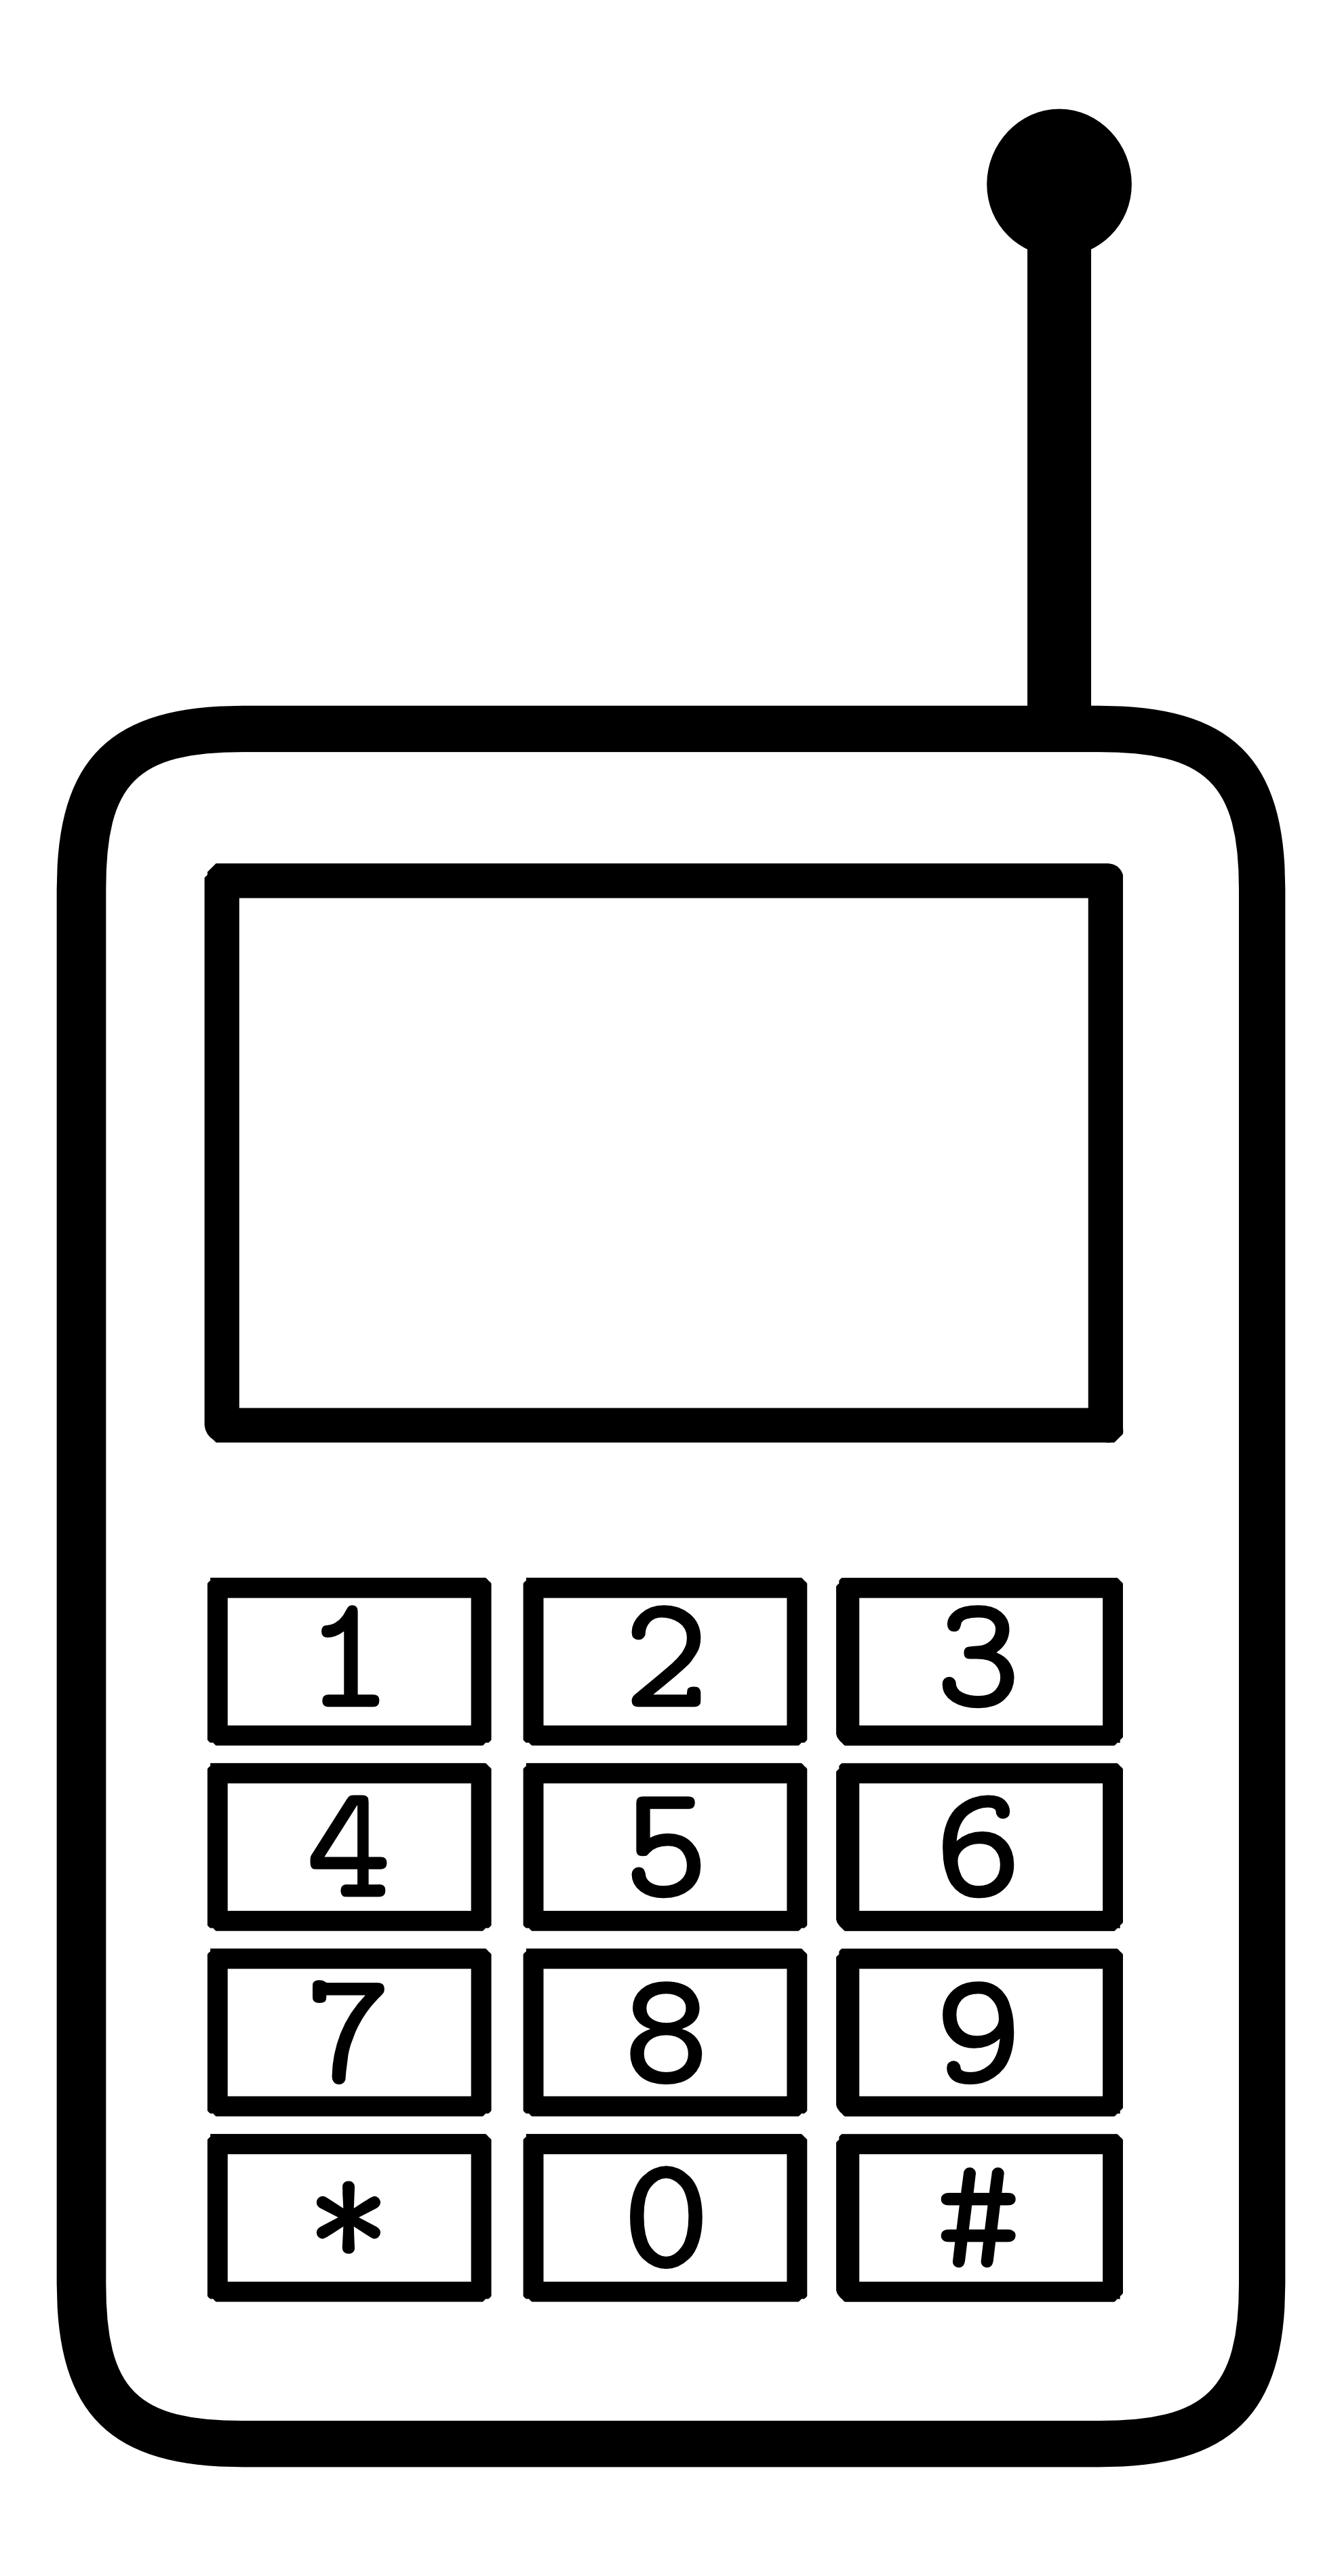 31 mobile phone clipart black and white . Free cliparts that you can ...